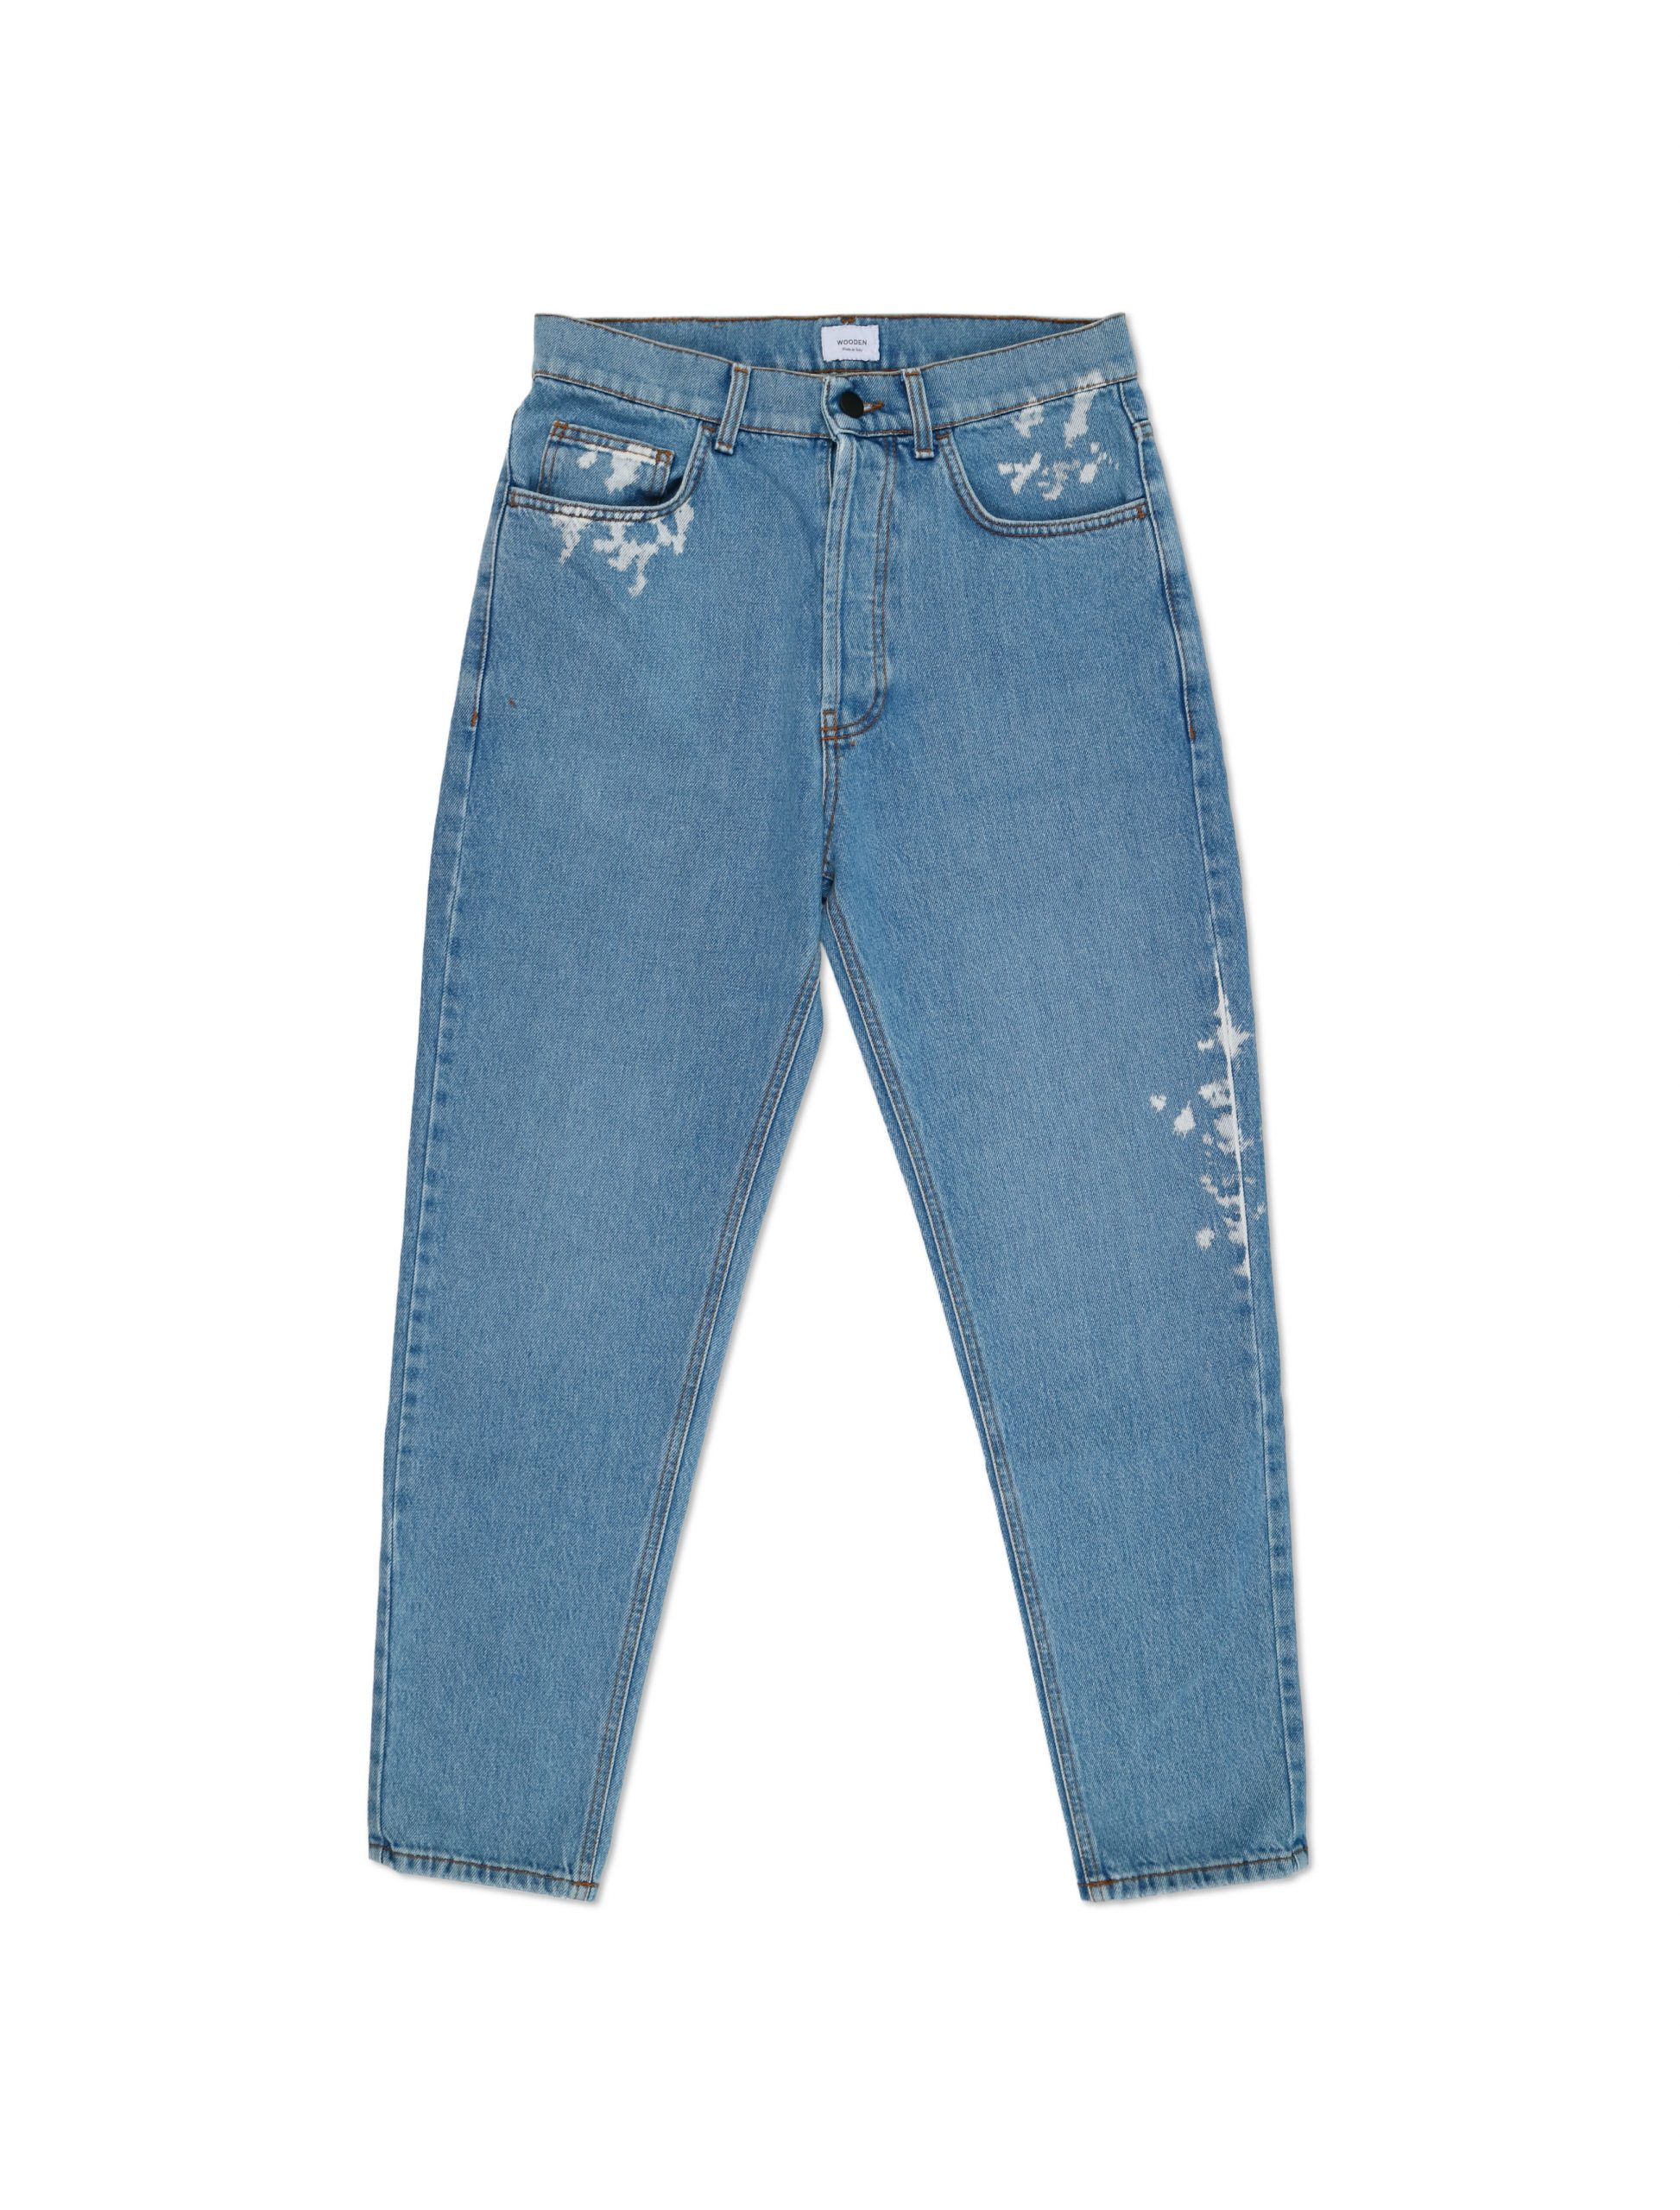 Jeans Original Spotted | Wooden Store